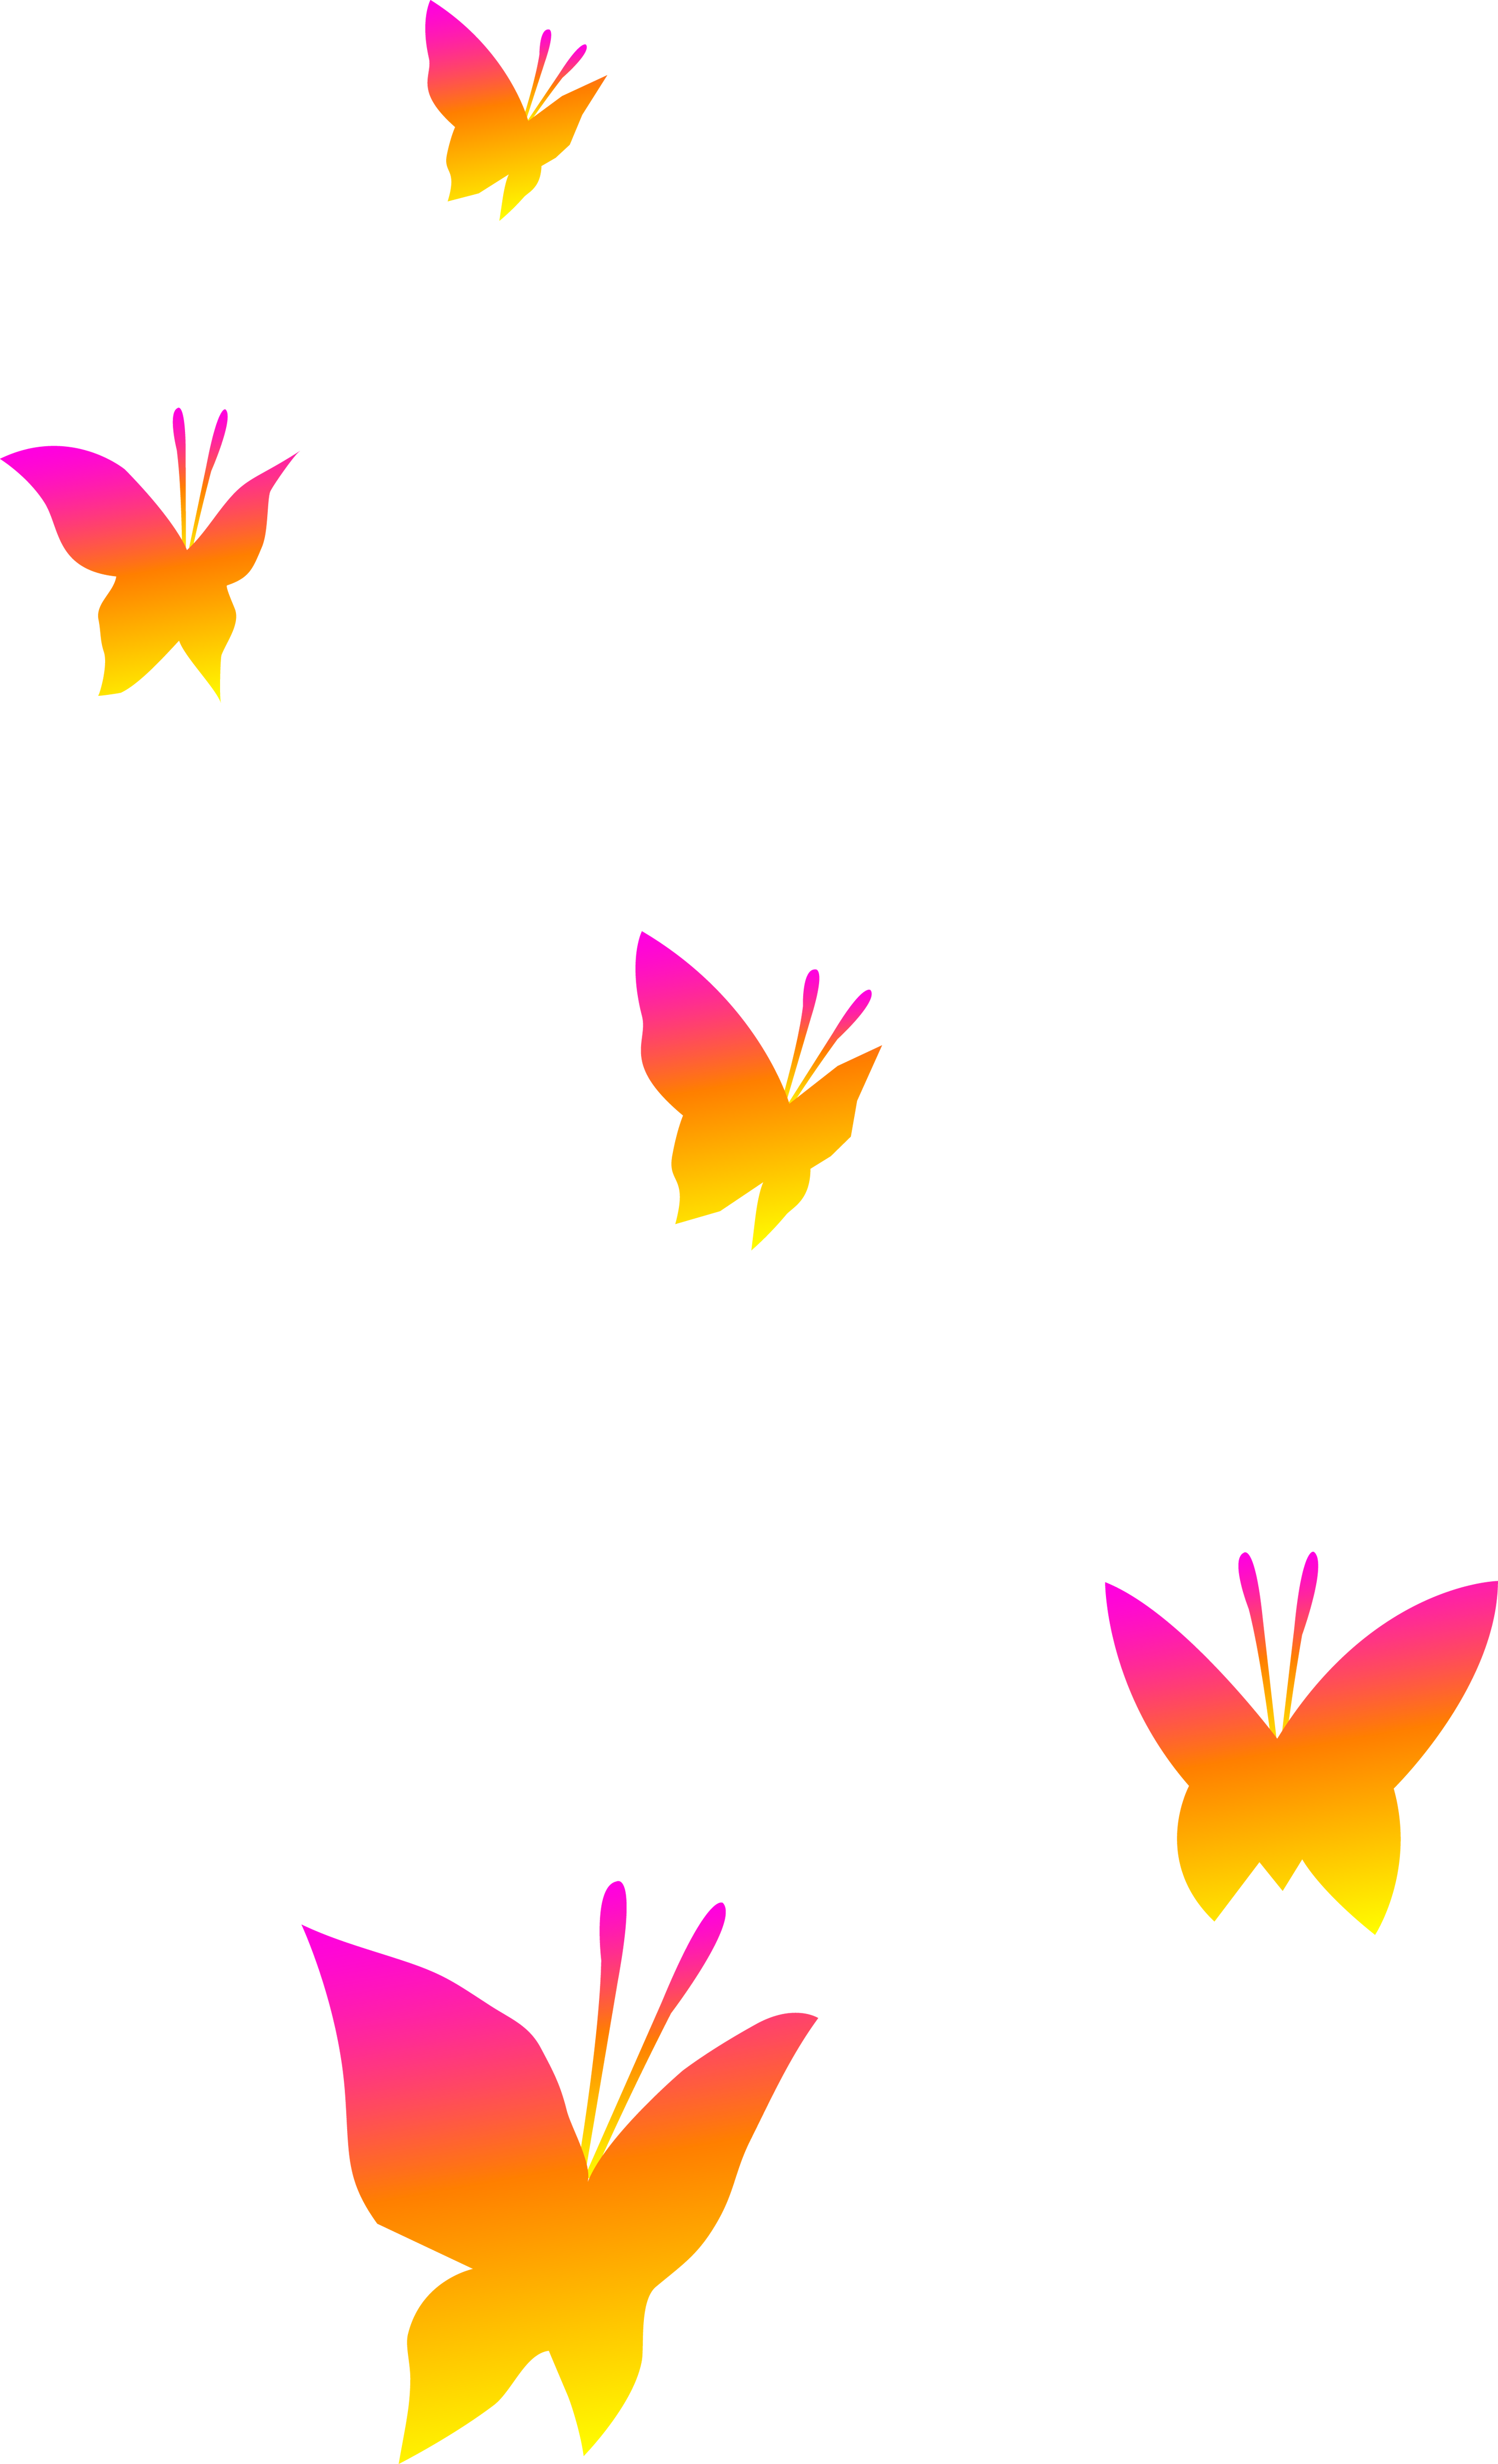 Flower butterfly clipart banner black and white library Butterflies clipart summer flower FREE for download on rpelm banner black and white library